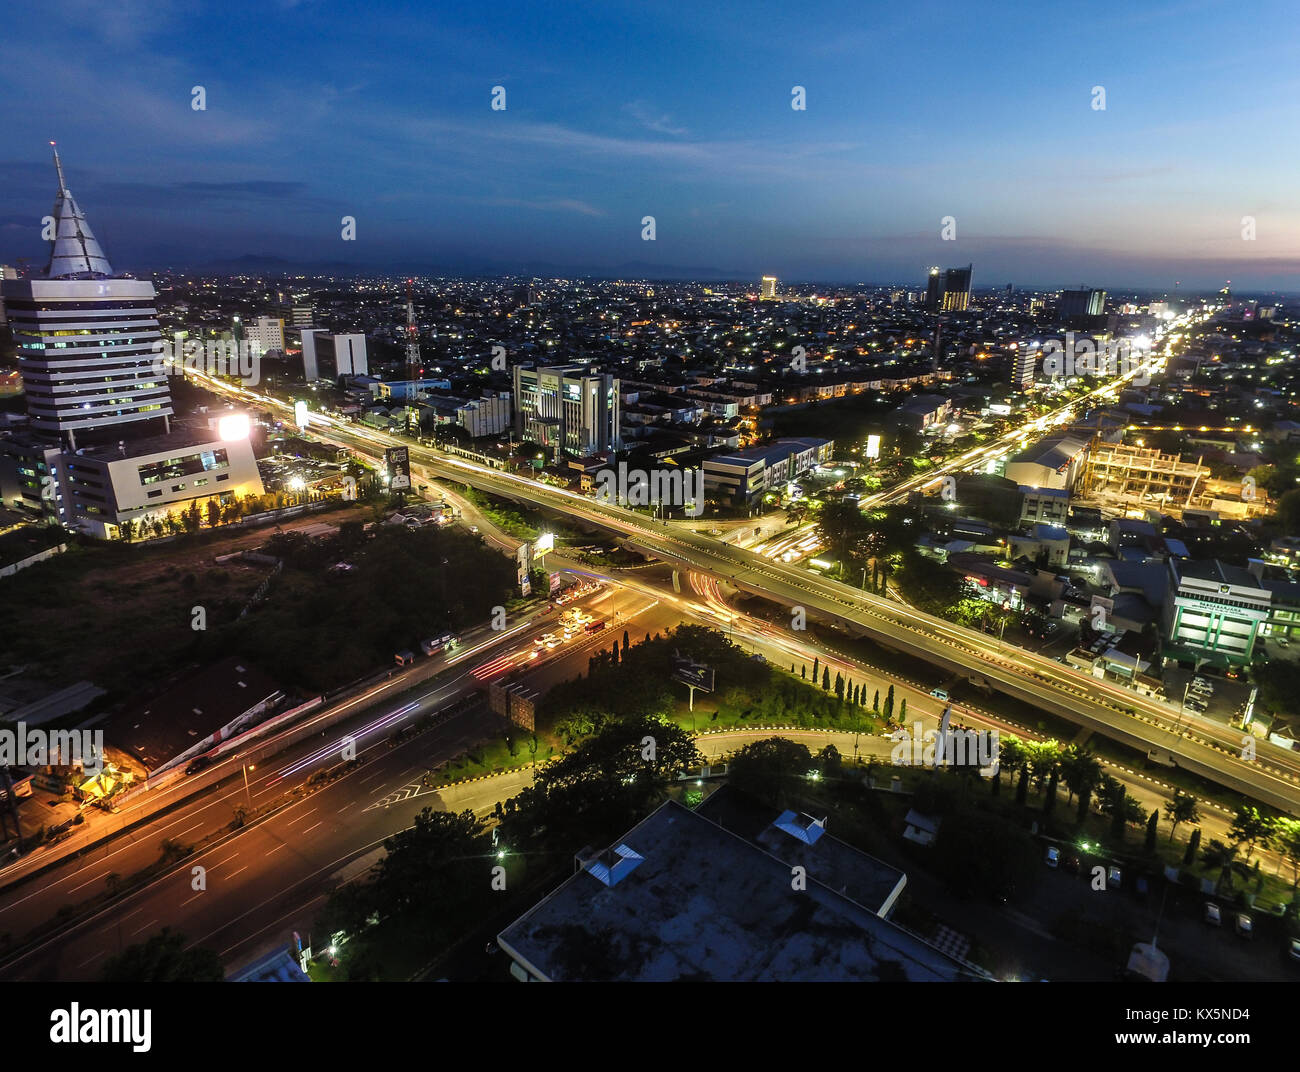 The city of Makassar just a moment after the sunset. - Stock Image